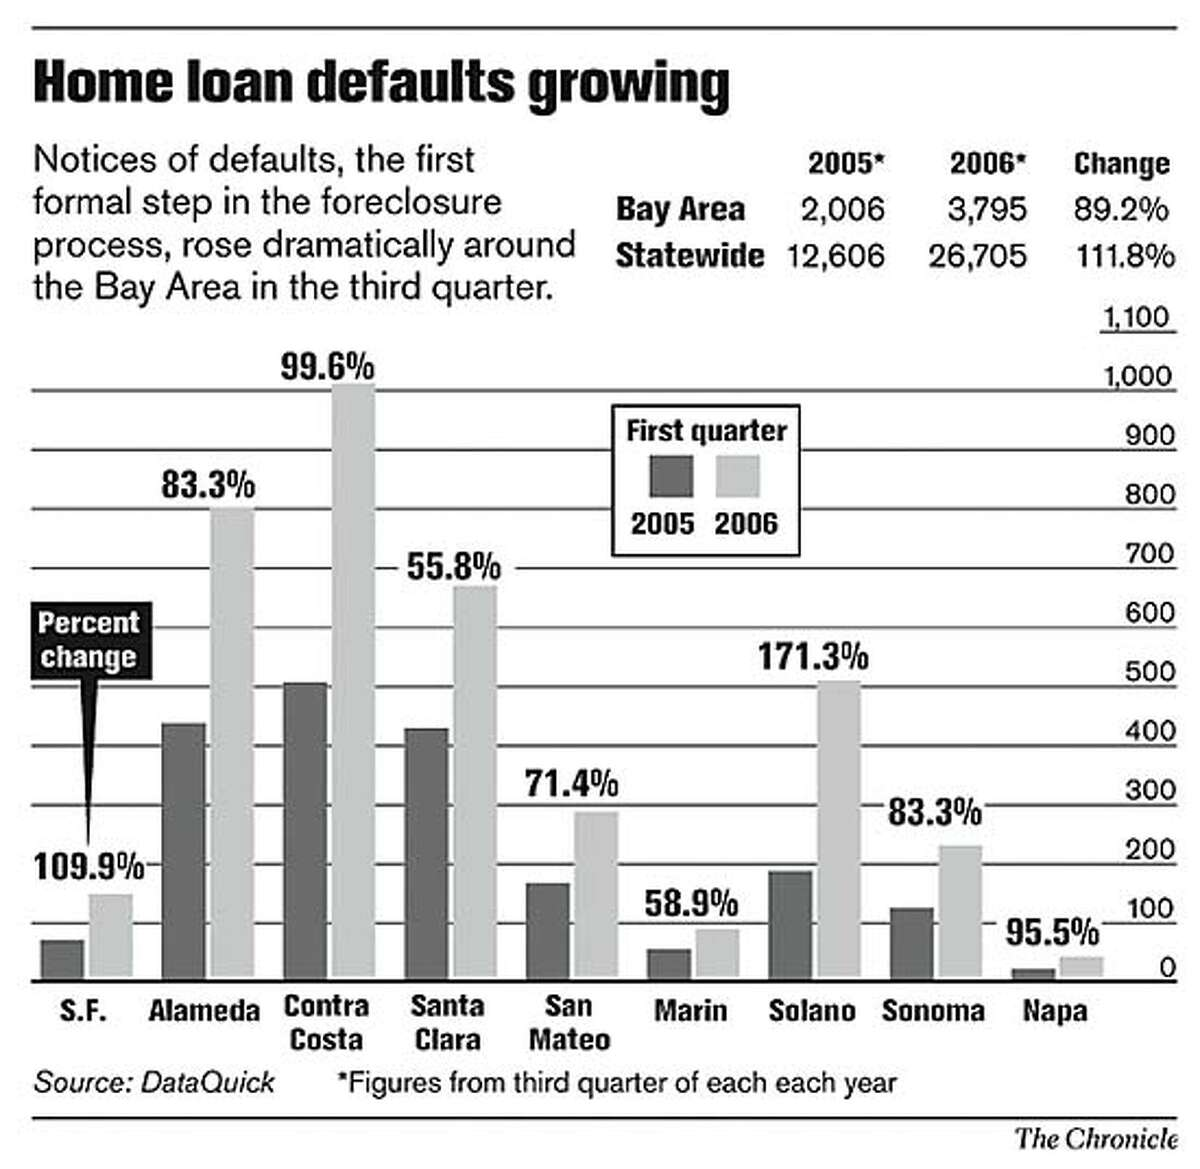 Home Loan Defaults Growing. Chronicle Graphic